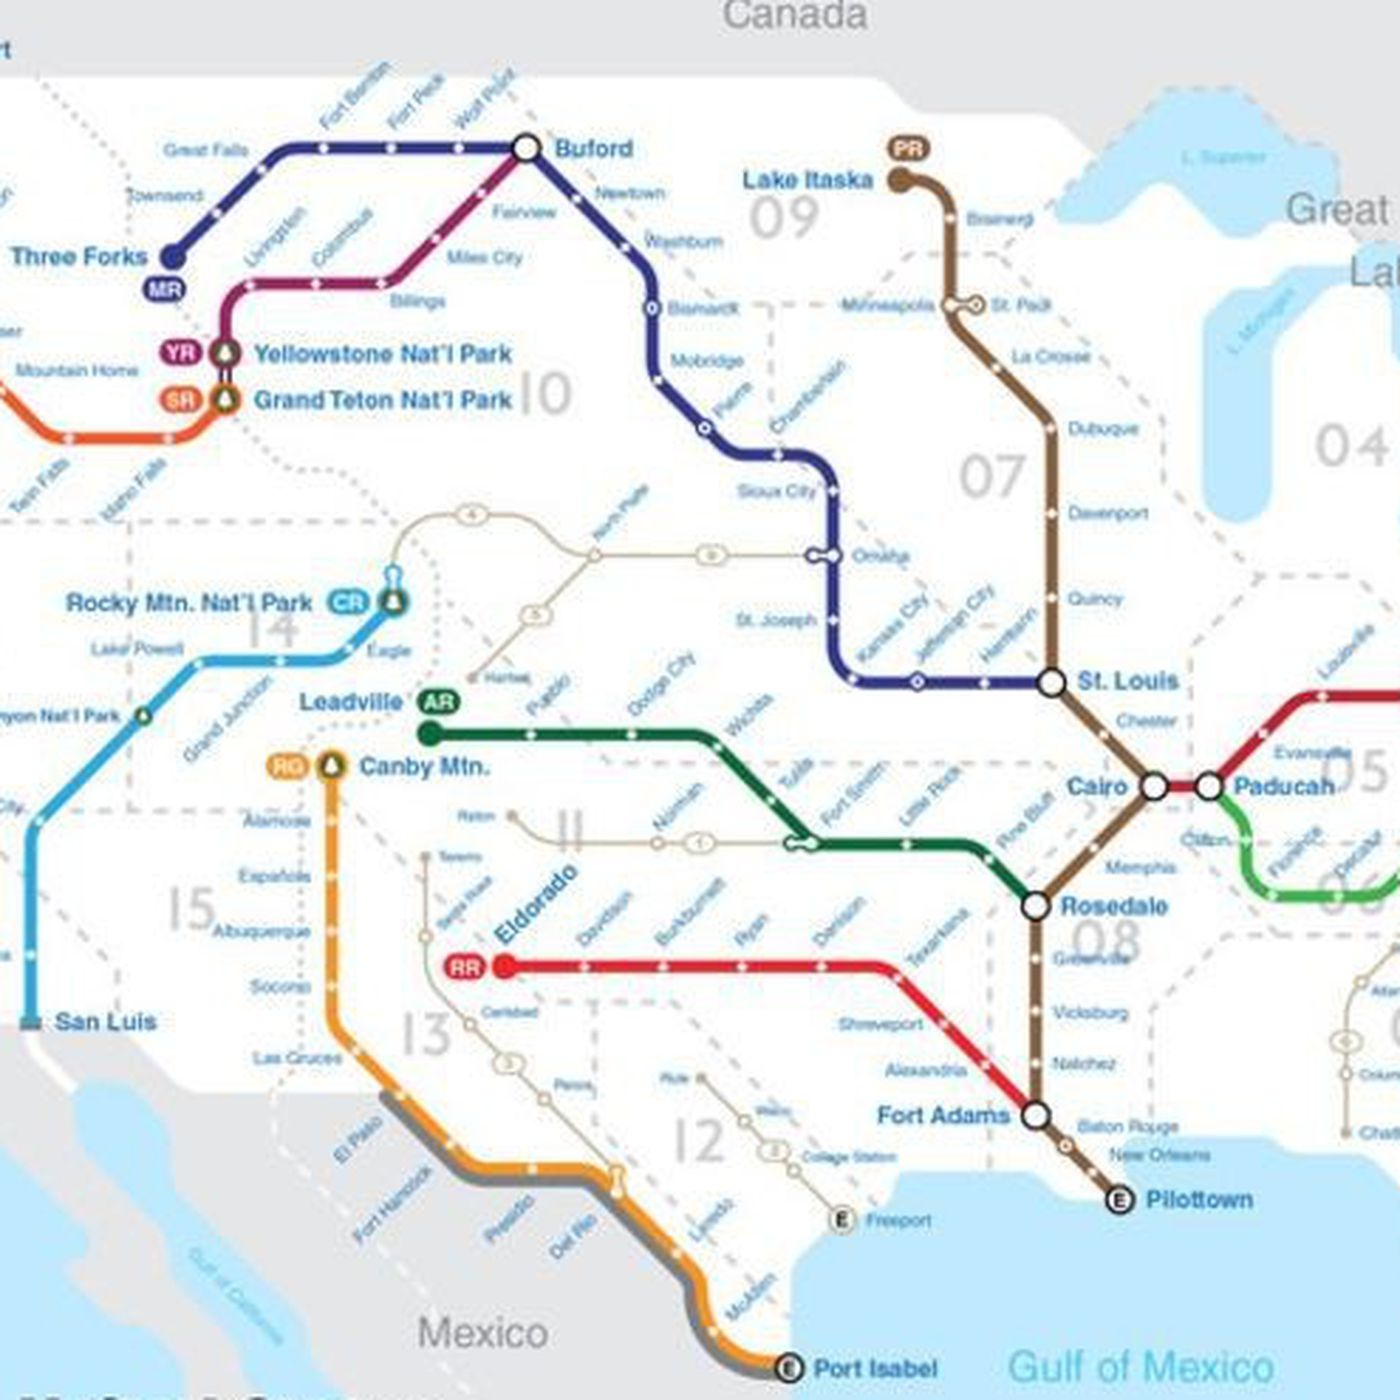 Rivers Subway Map.Mapping U S Rivers Like A National Subway System Curbed